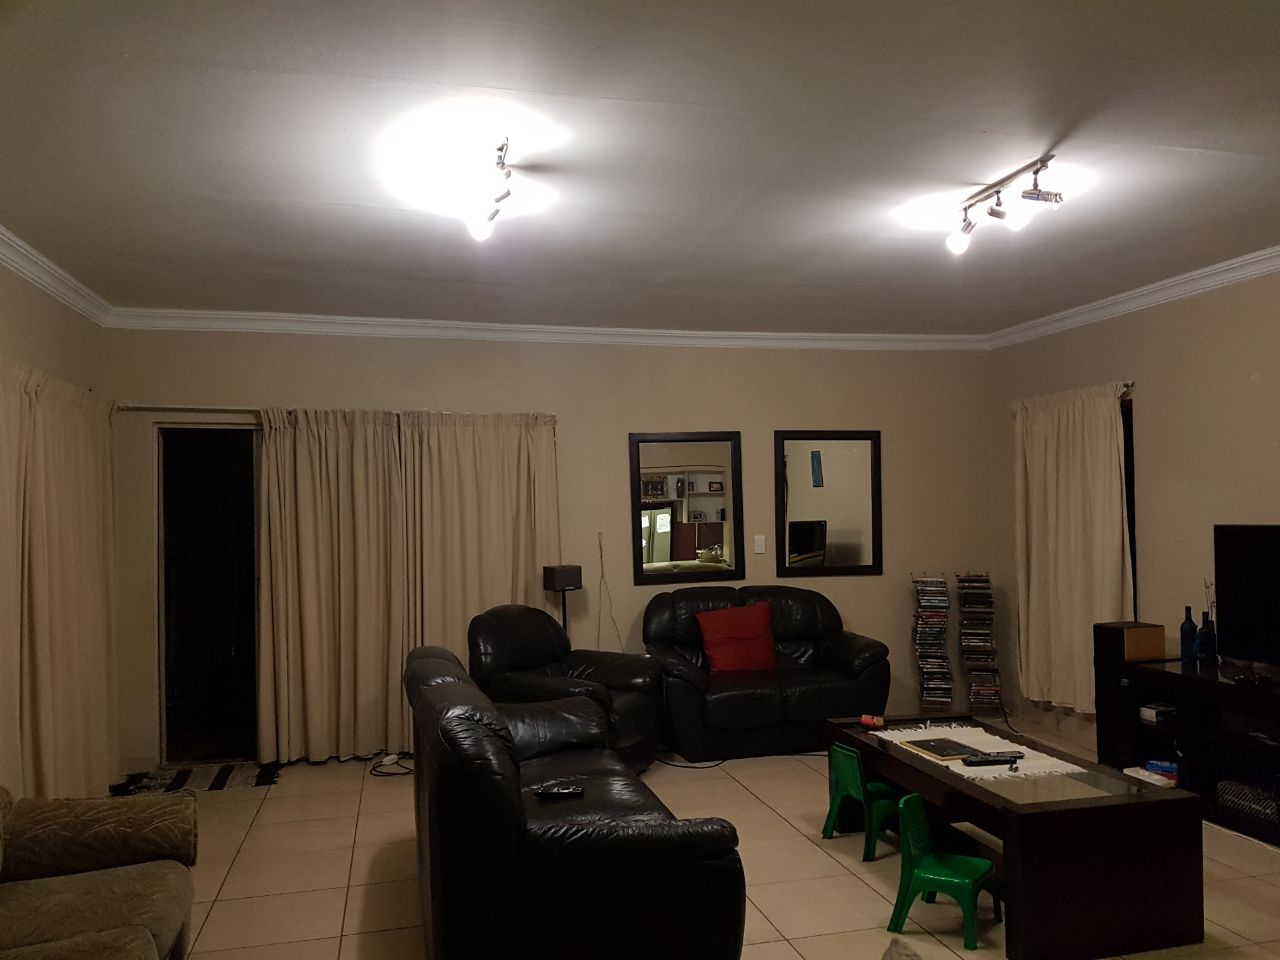 3 Bedroom House for sale in Mountain View ENT0040118 : photo#2